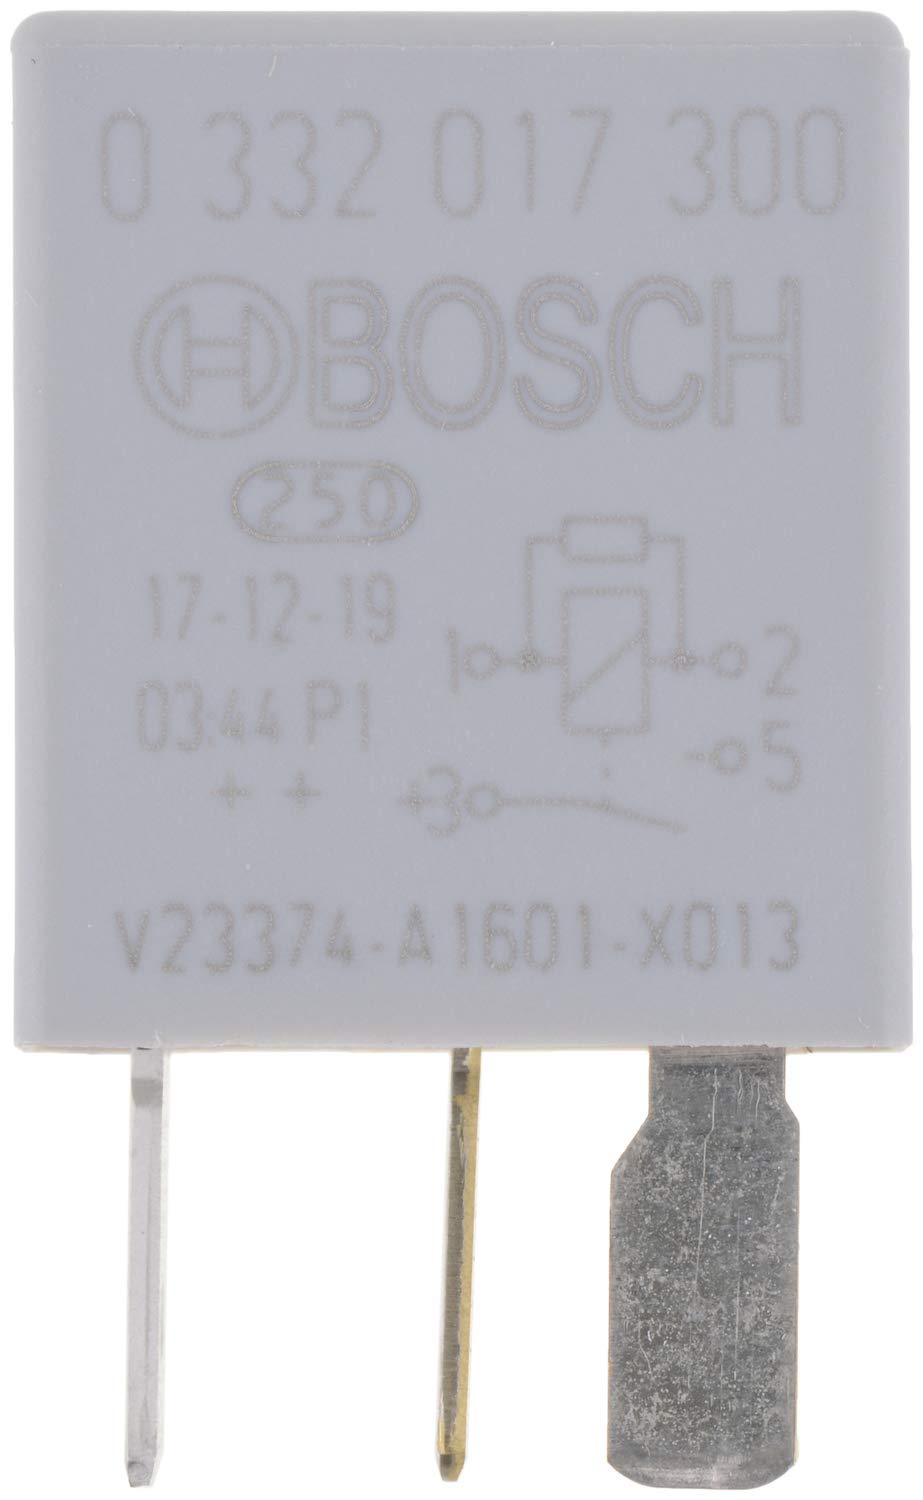 Bosch Automotive 0332017300 4 Pins 20 A 12 V Normal Open Micro Relays